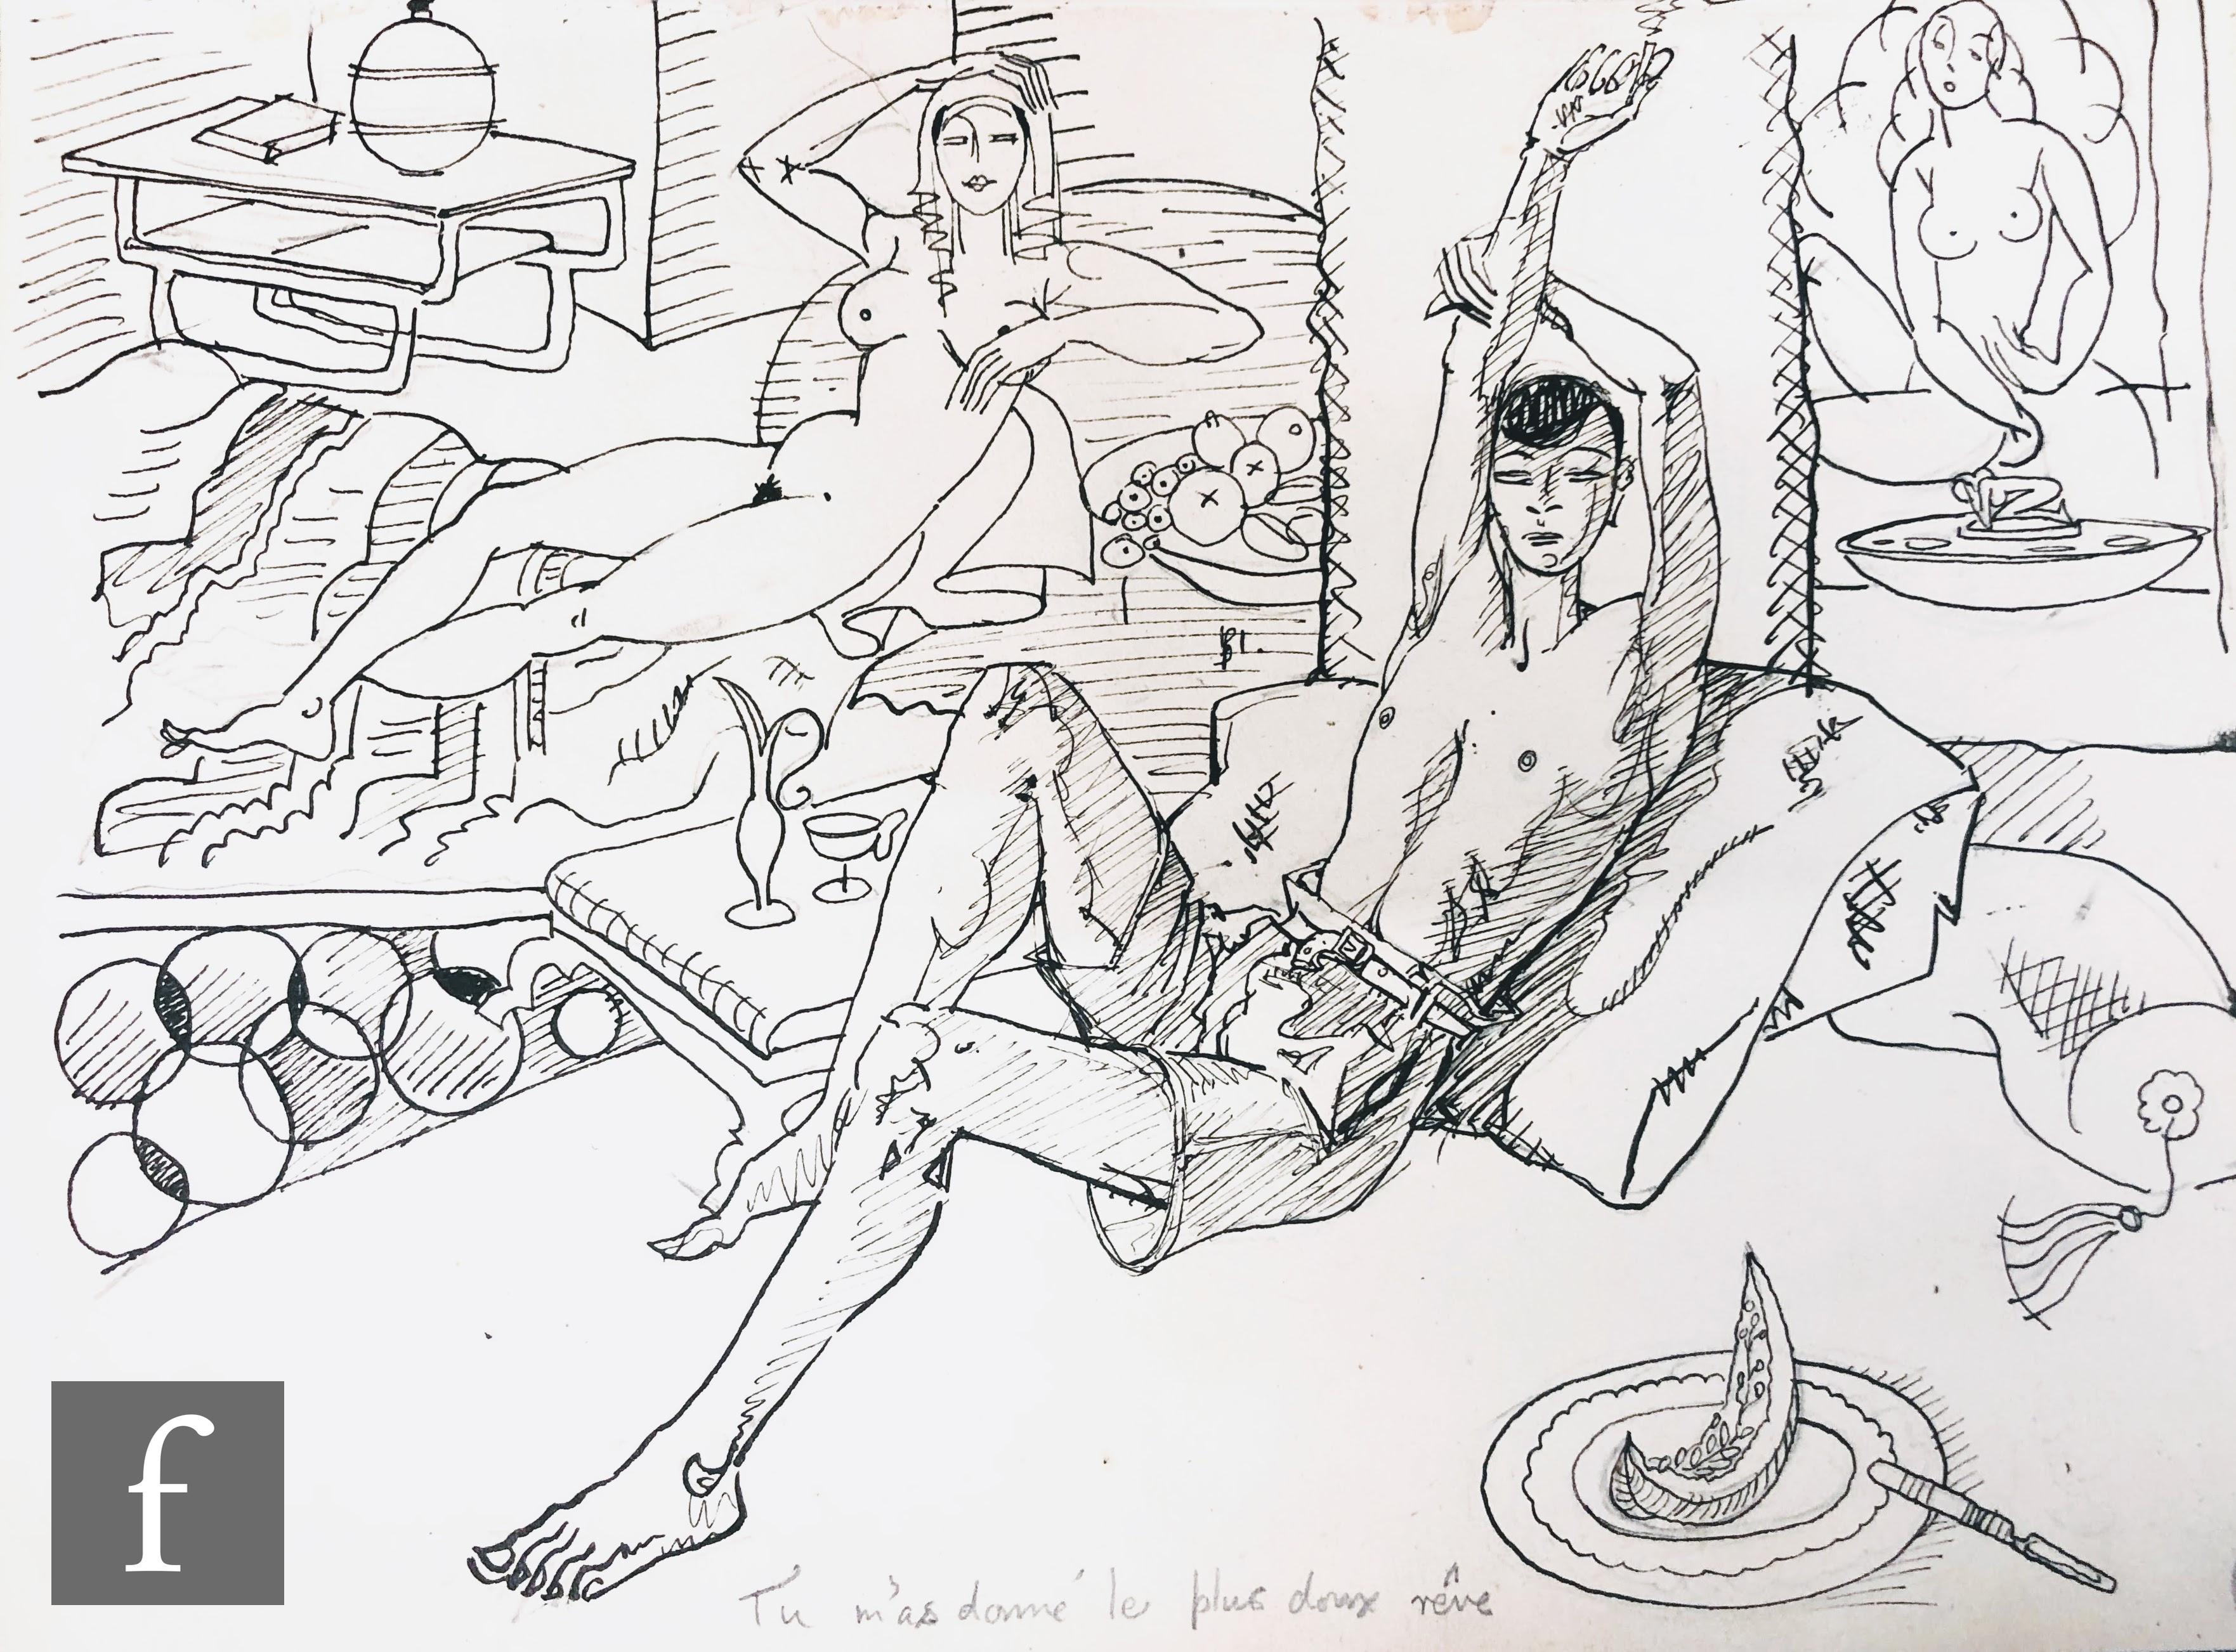 ALBERT WAINWRIGHT (1898-1943) - A study depicting a reclining semi nude young man resting on